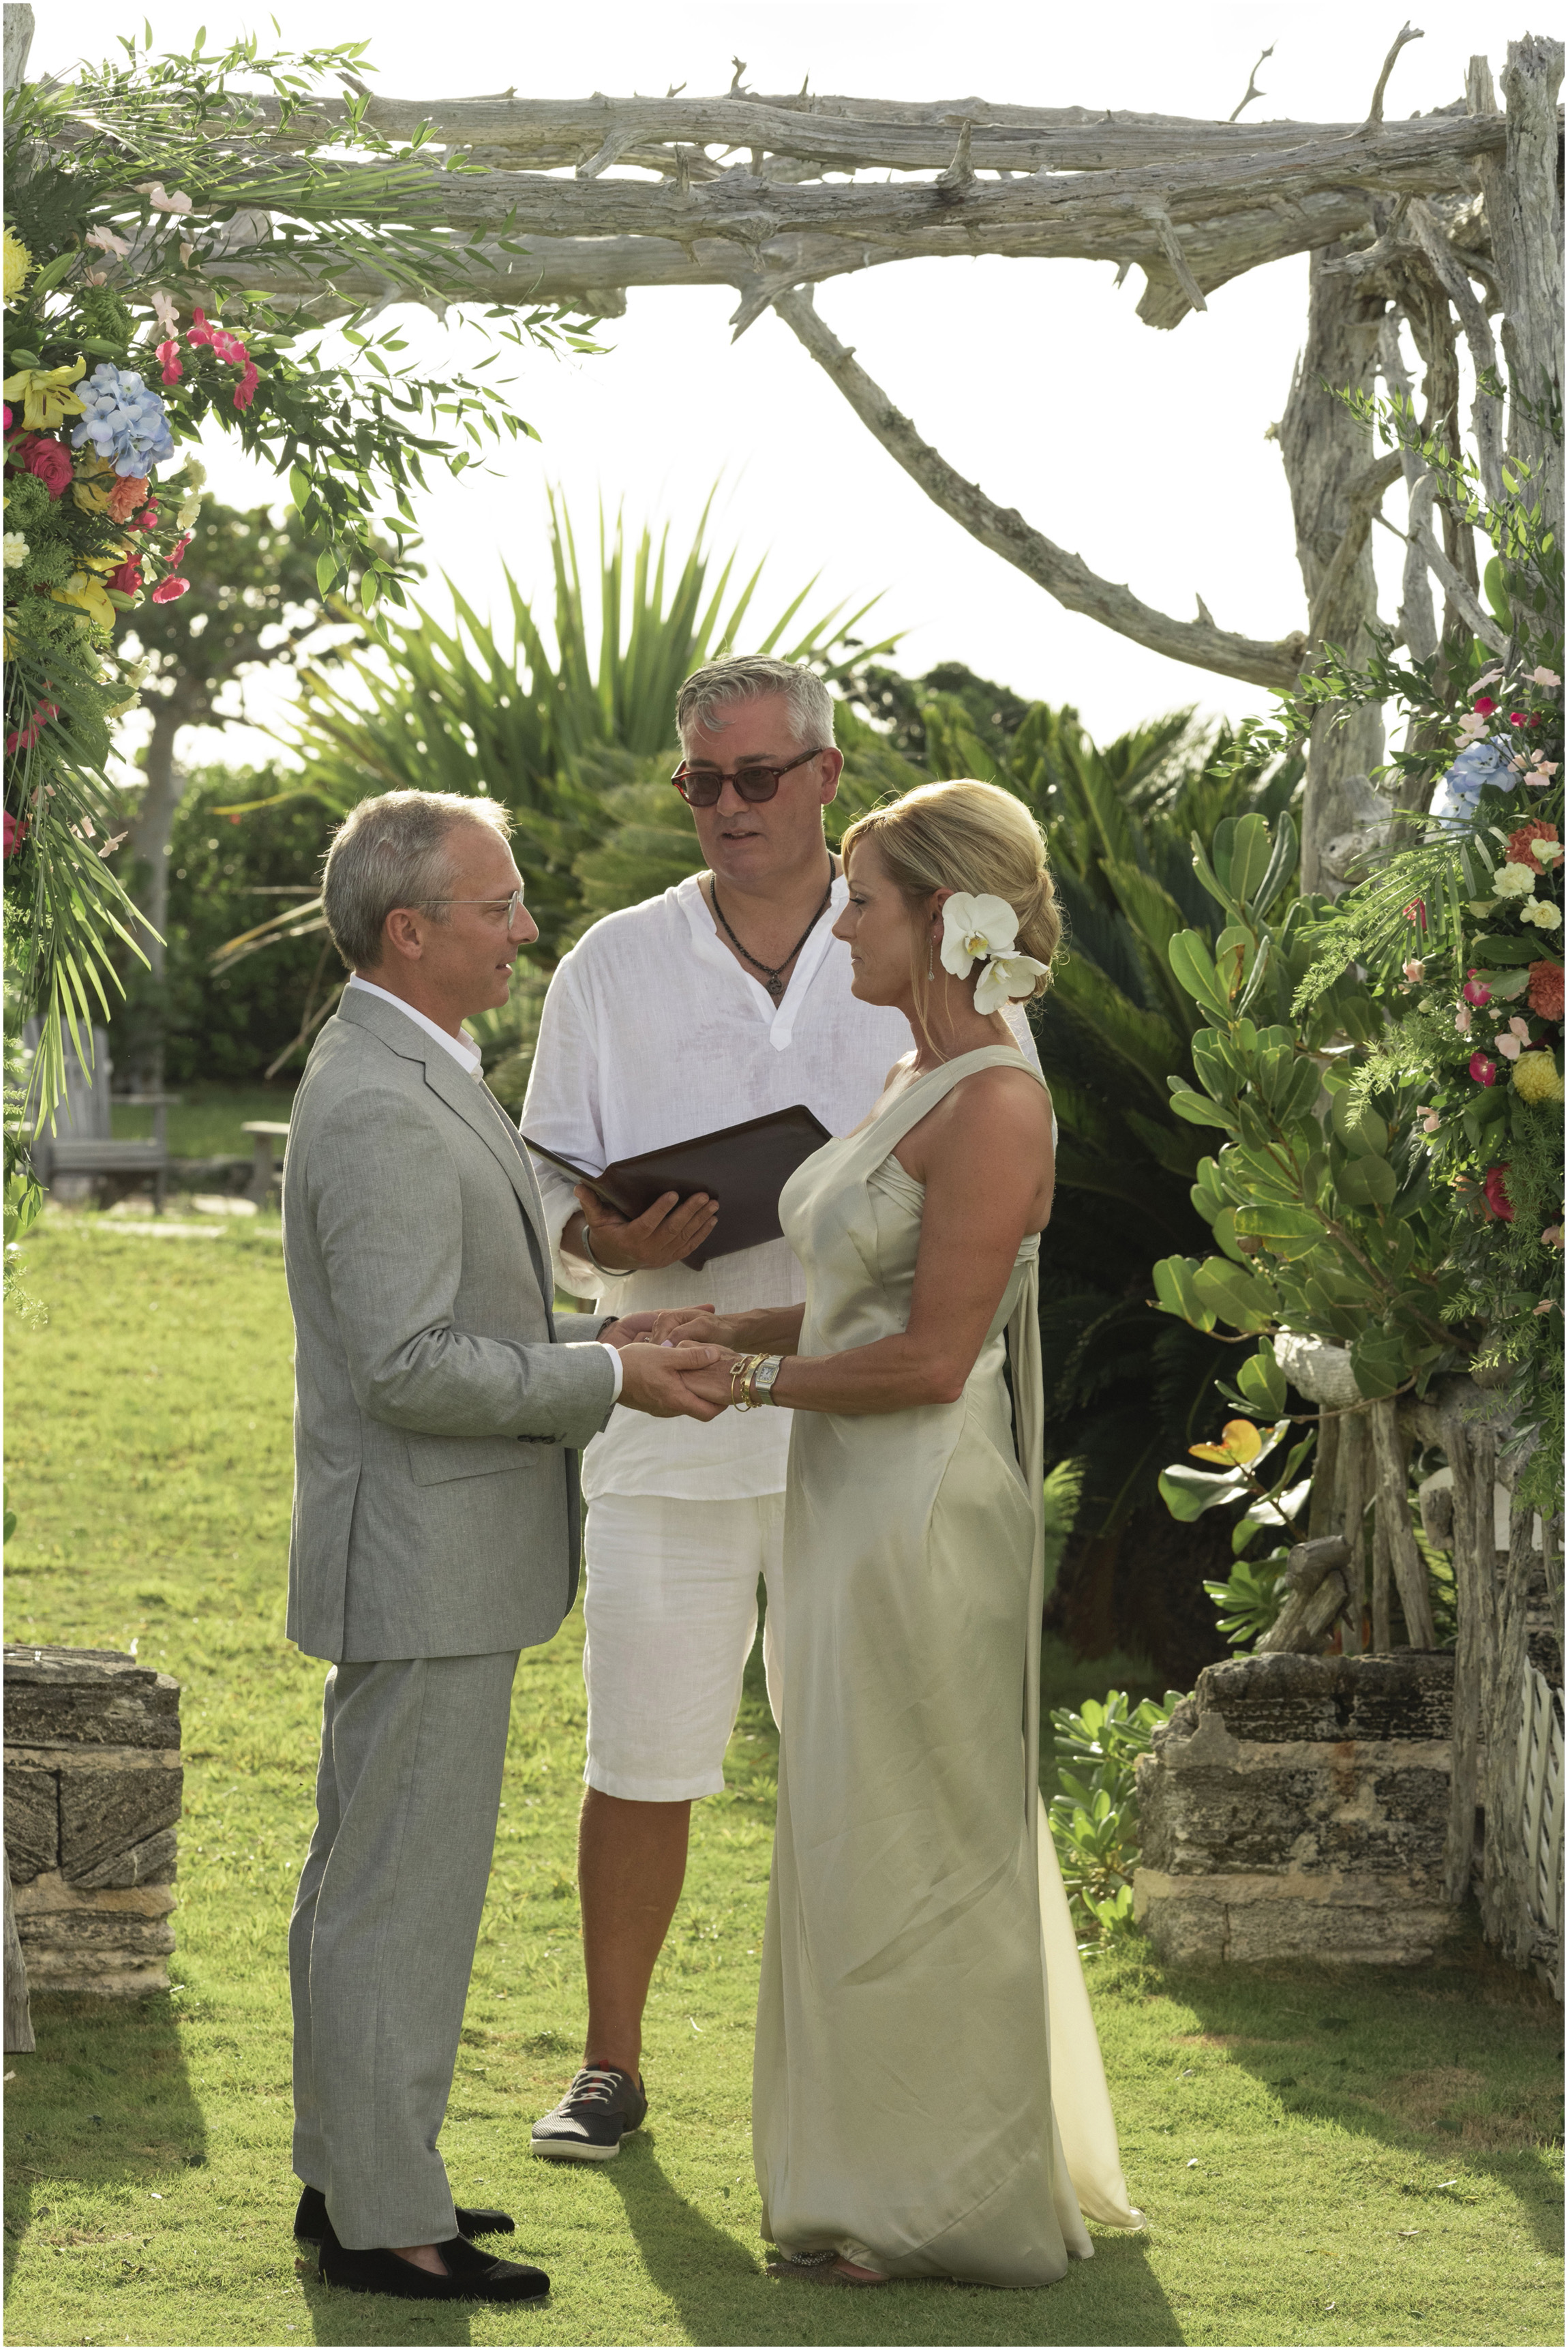 ©FianderFoto_Bermuda_Wedding_Photographer_Long_Island_Bermuda_Nancy_Ray_068.jpg